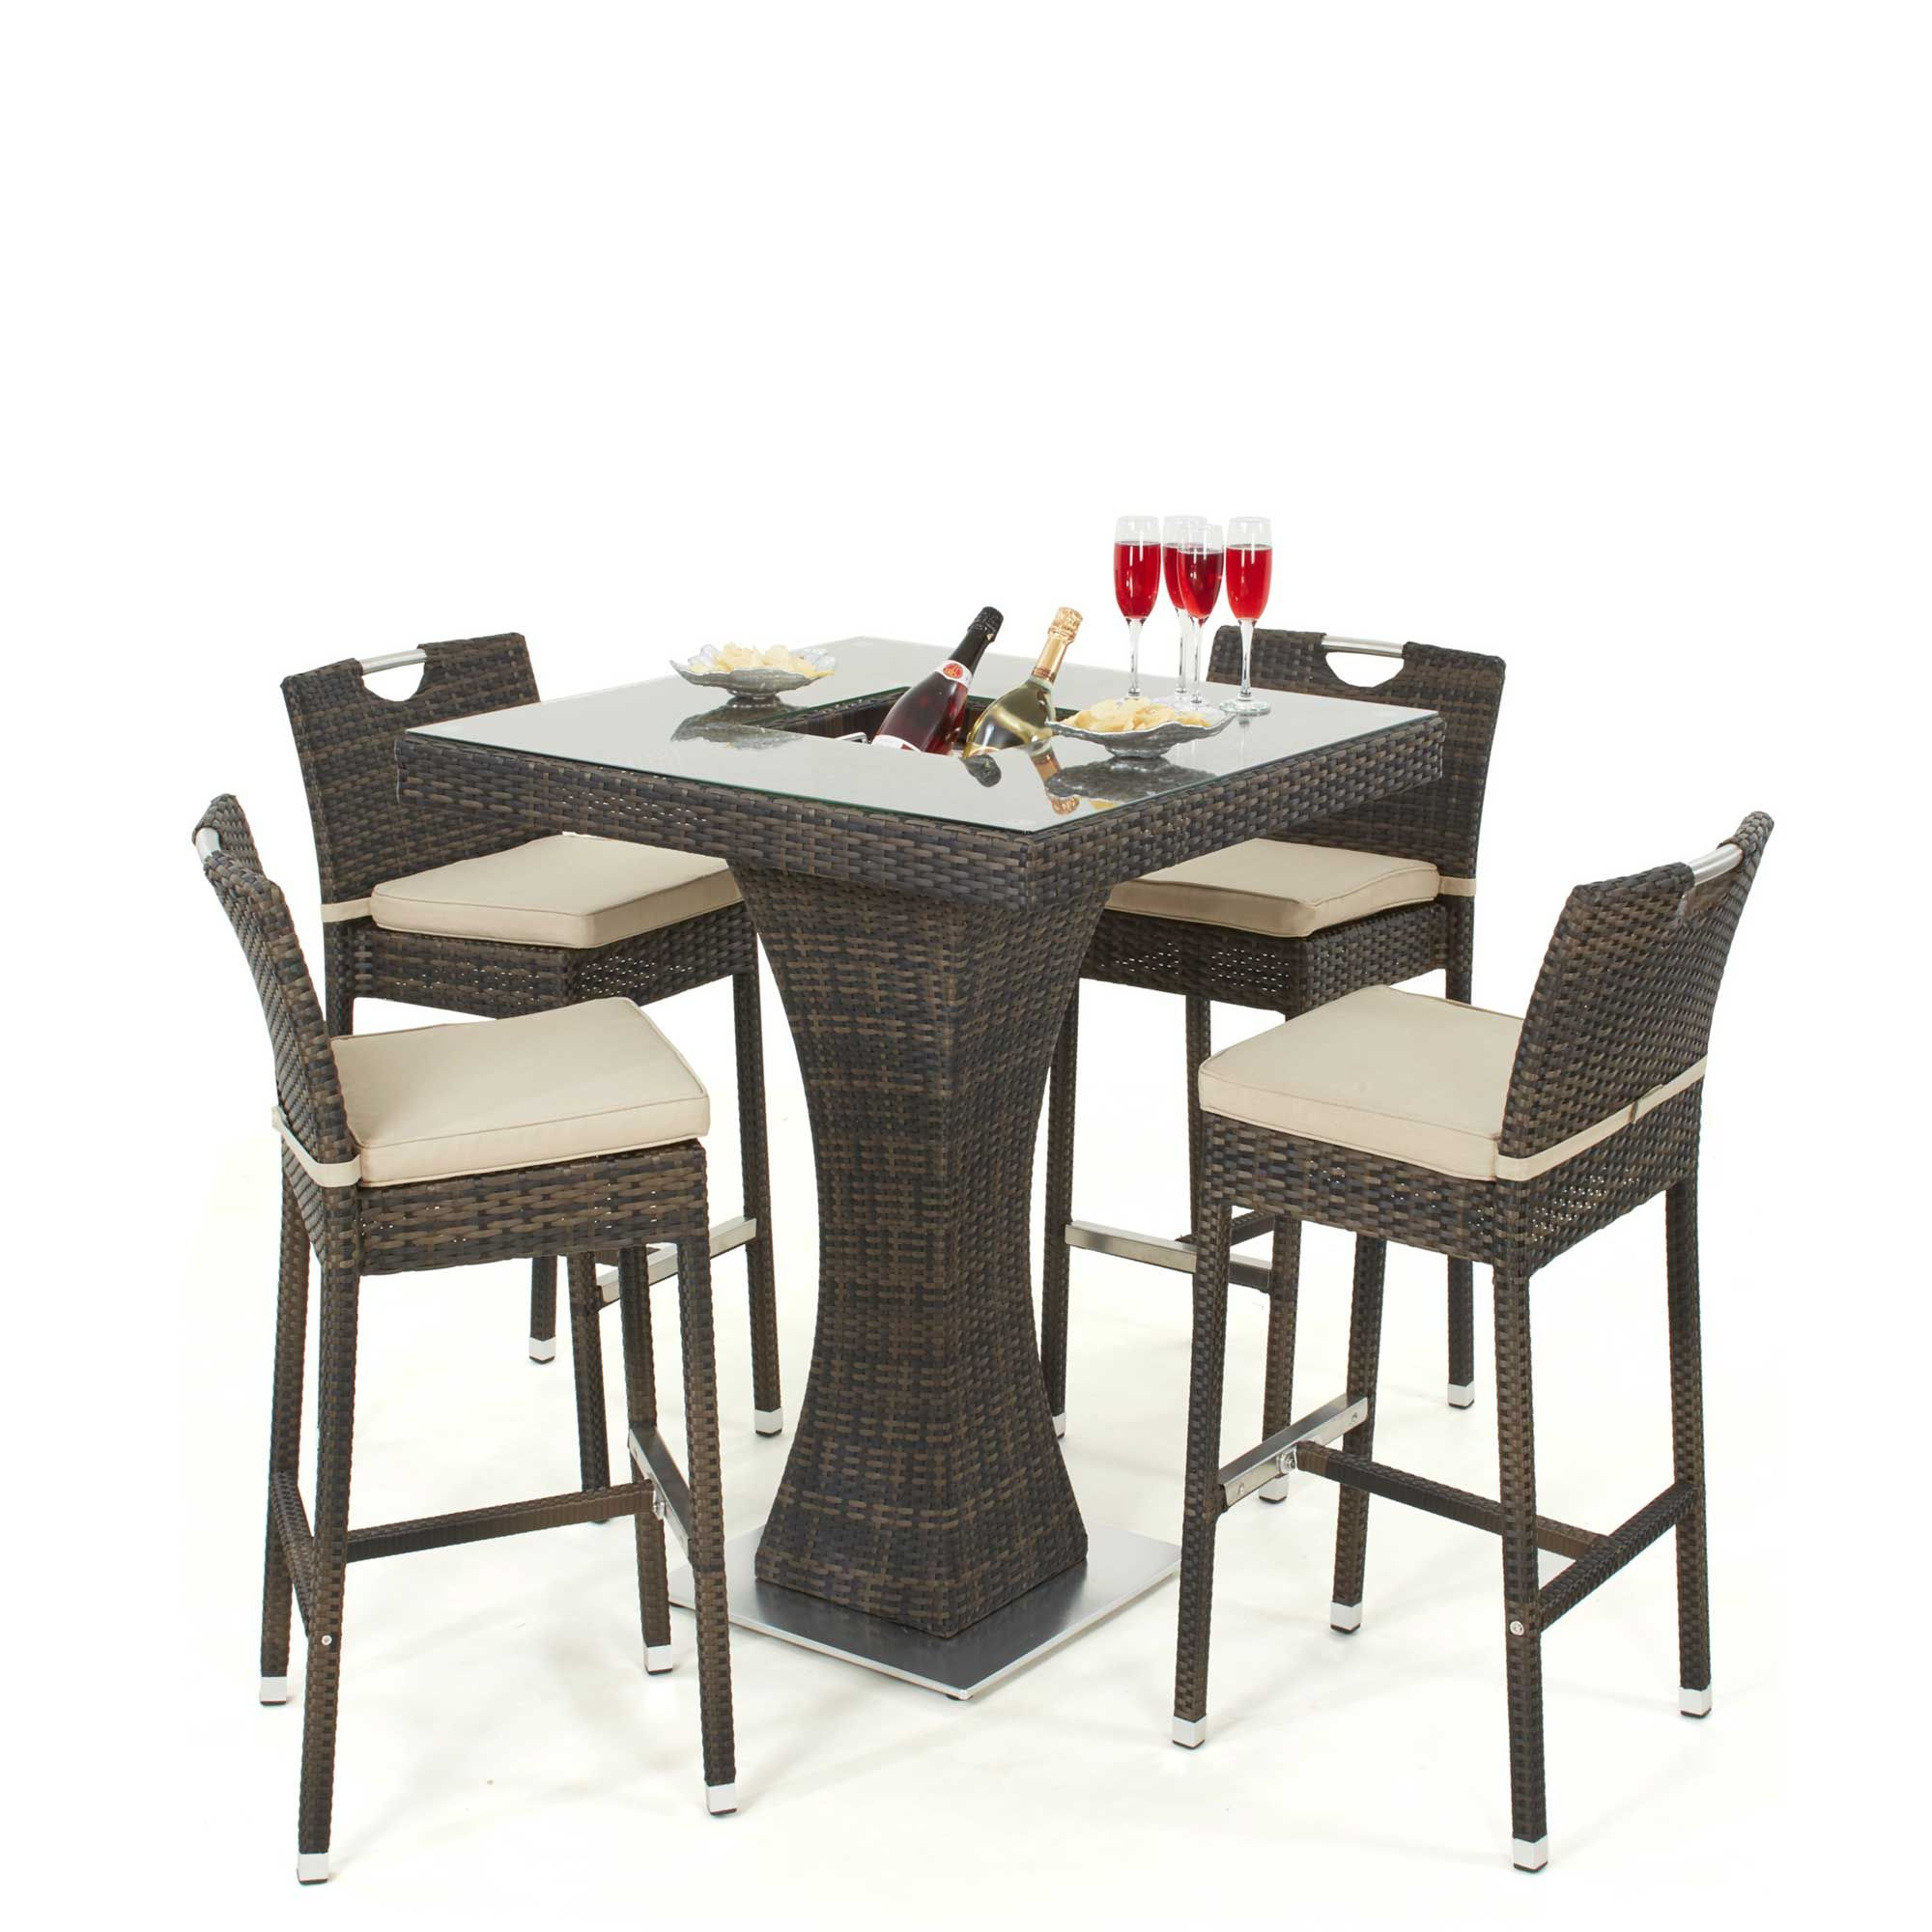 Kersey Outdoor Tall Bar Table with Ice Bucket and 4 Stools, Brown ...